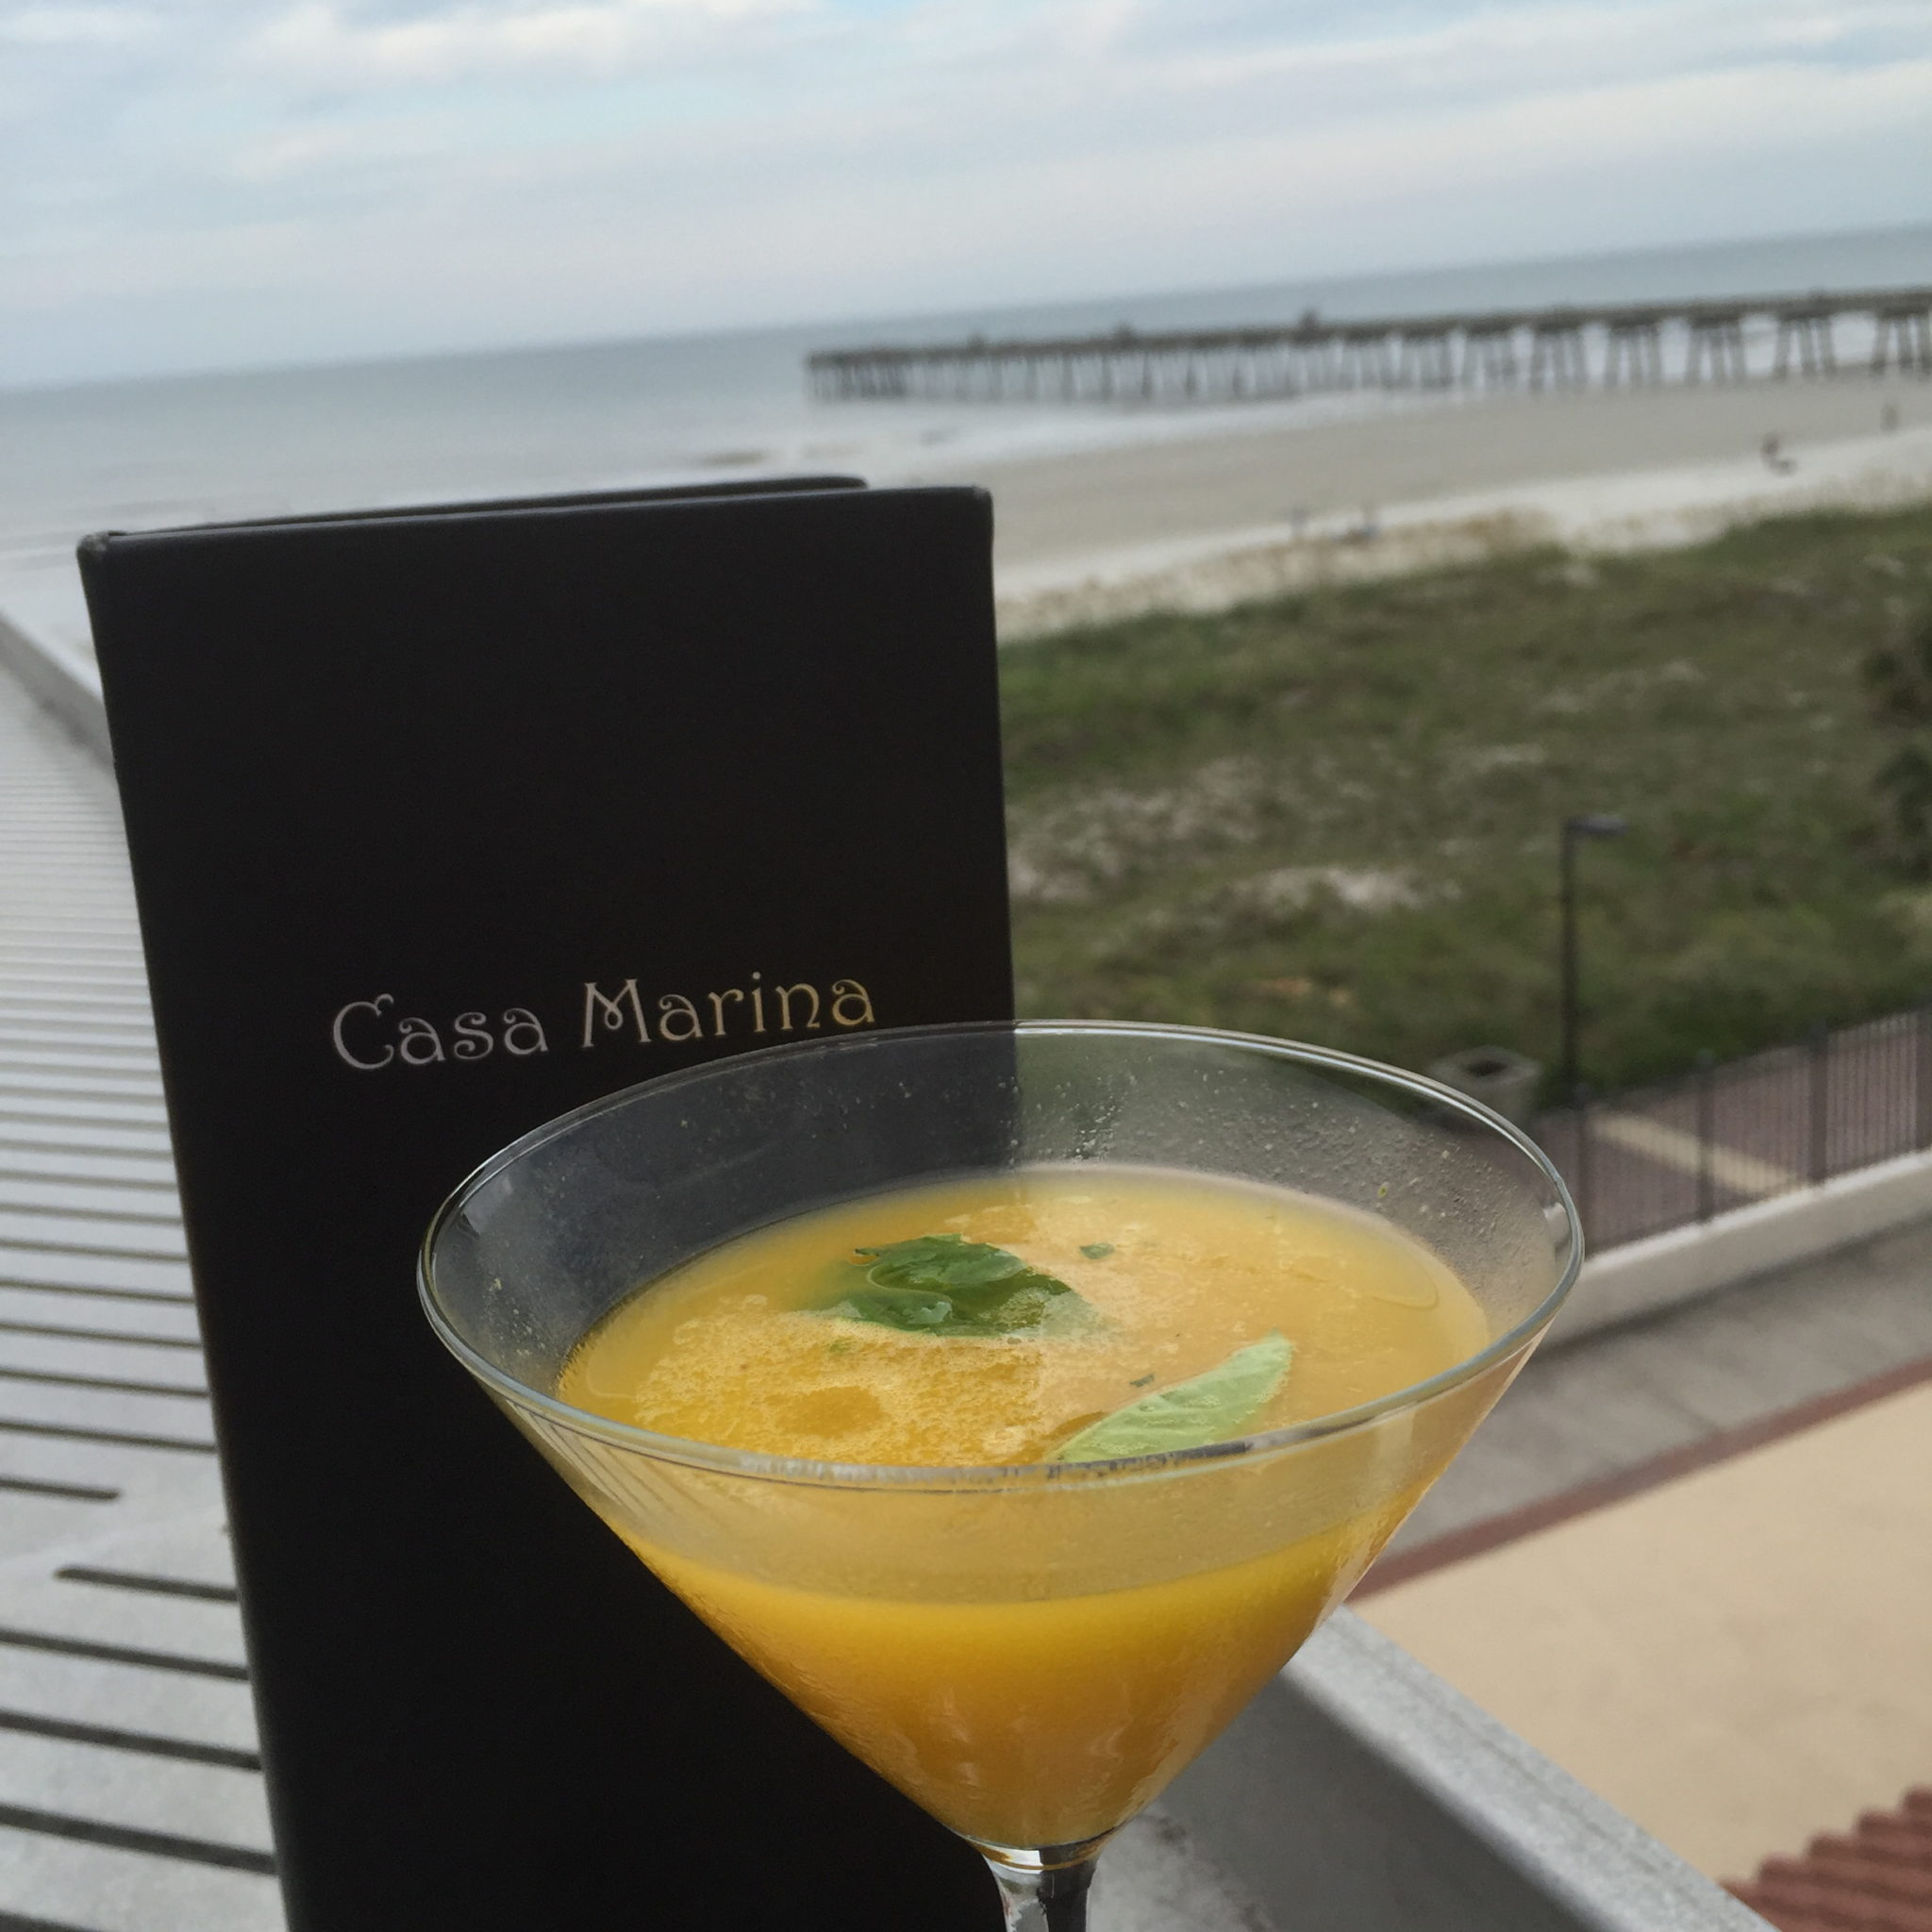 Hotel Review: Casa Marina Hotel in Jacksonville Beach, Florida